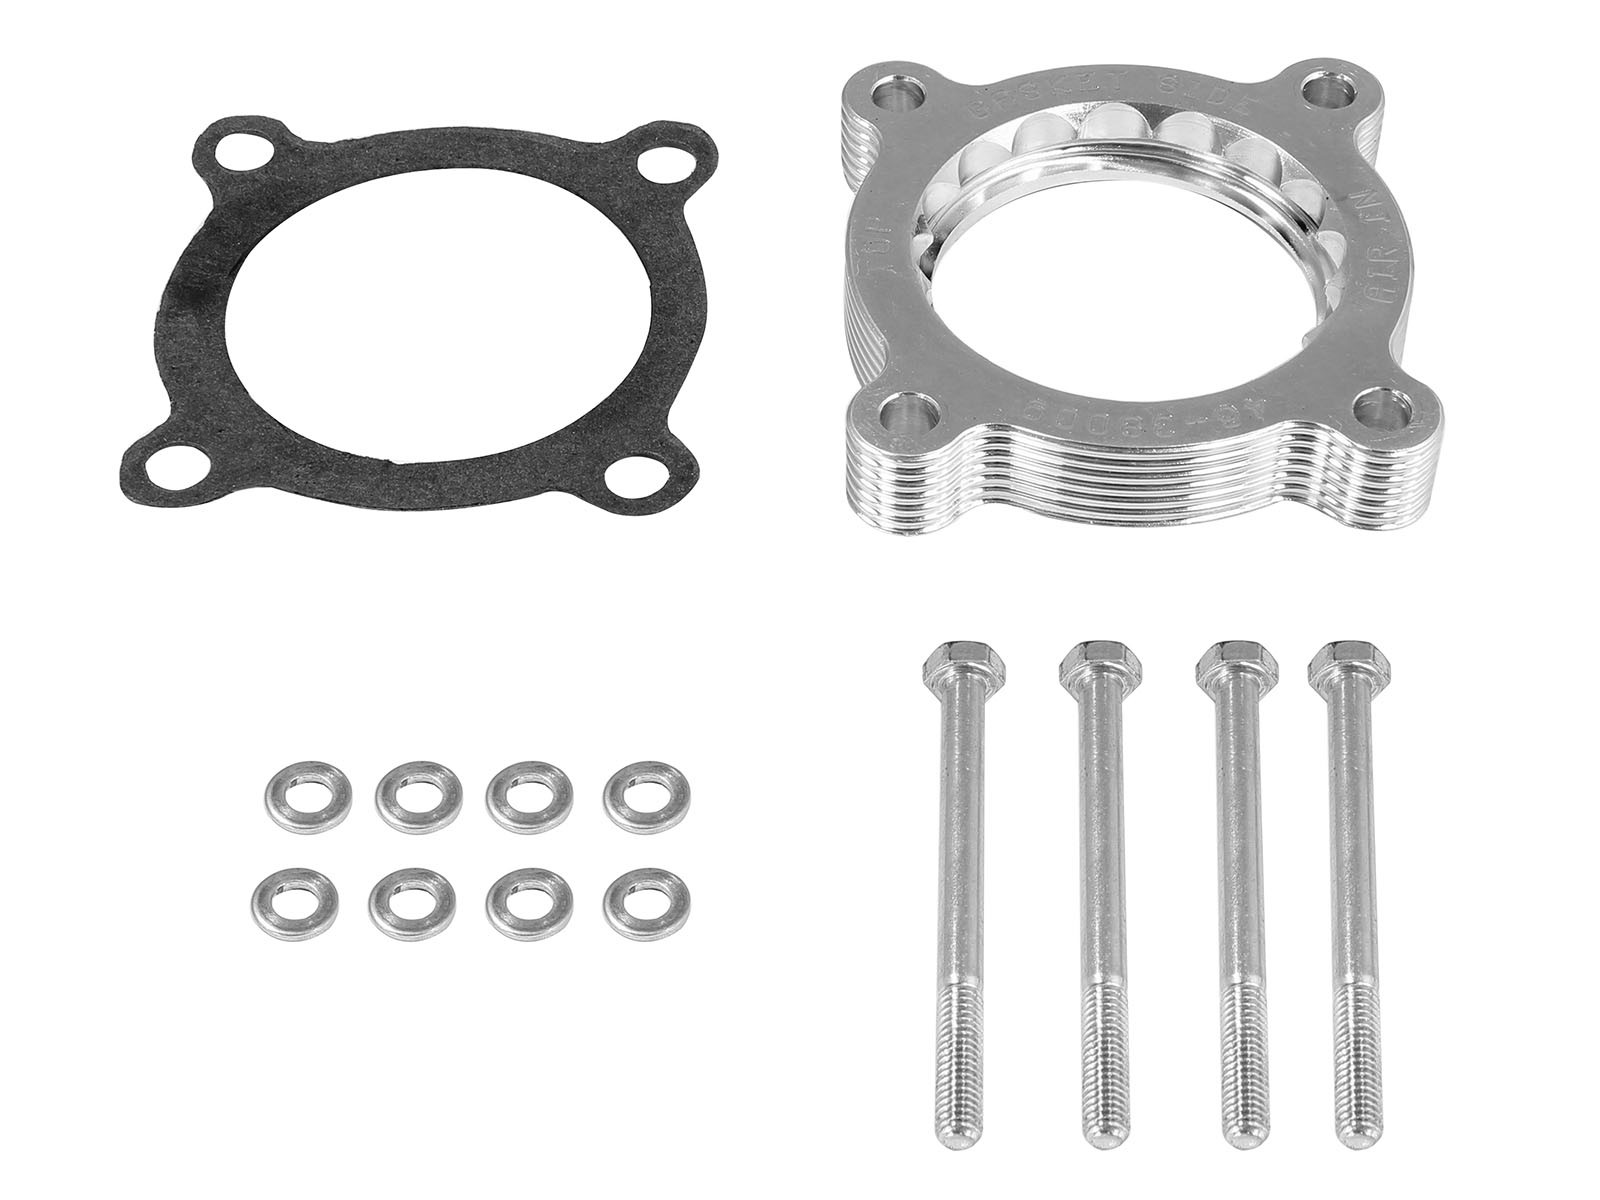 46-38009 AFE/Advance Flow Engineering Throttle Body Spacer 1 Port